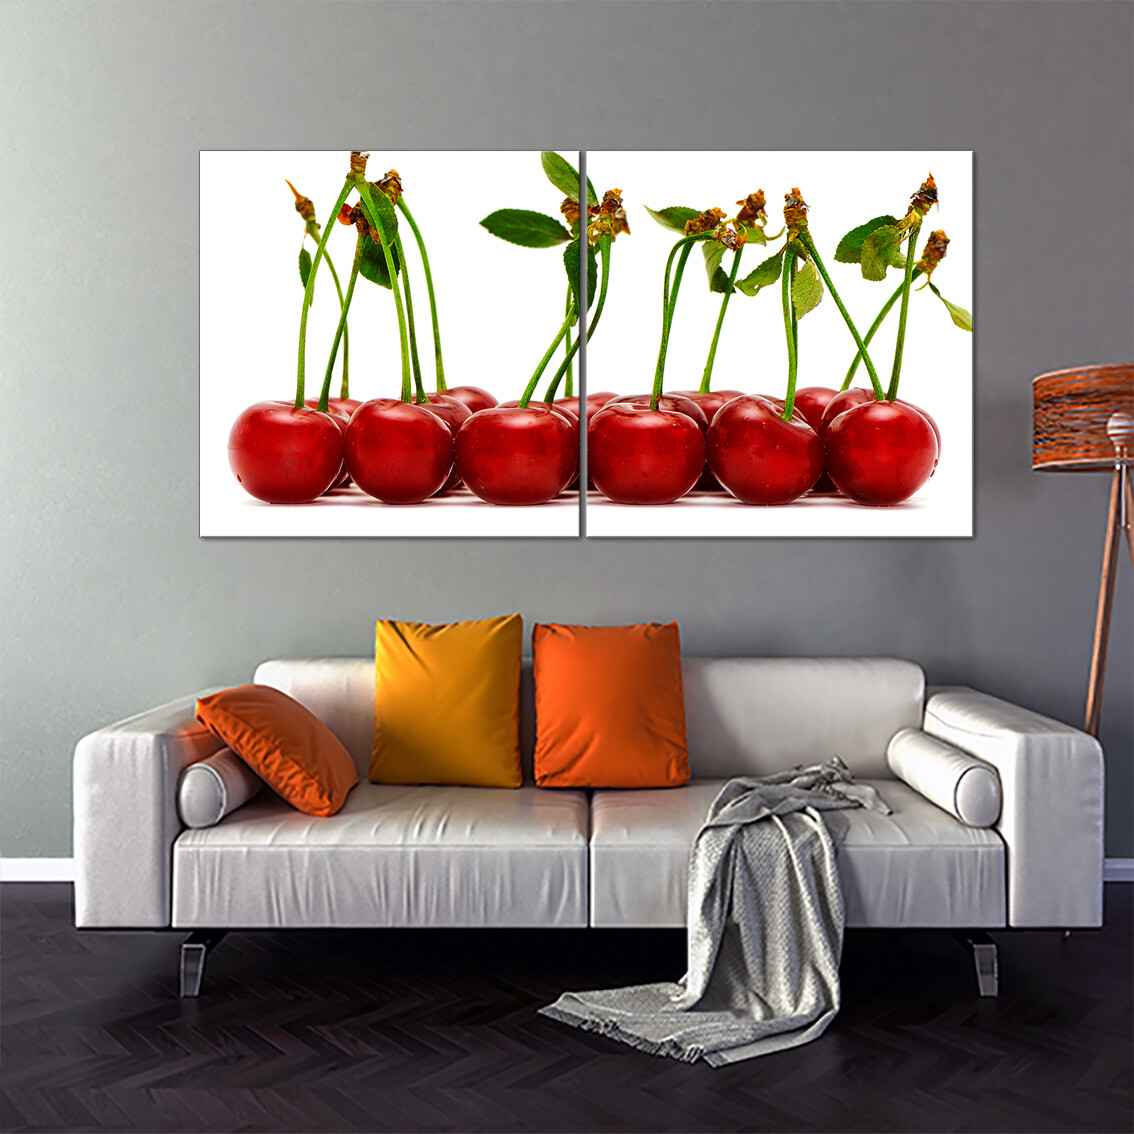 Cherry Row  - Modern Luxury Wall art Printed on Acrylic Glass - Frameless and Ready to Hang